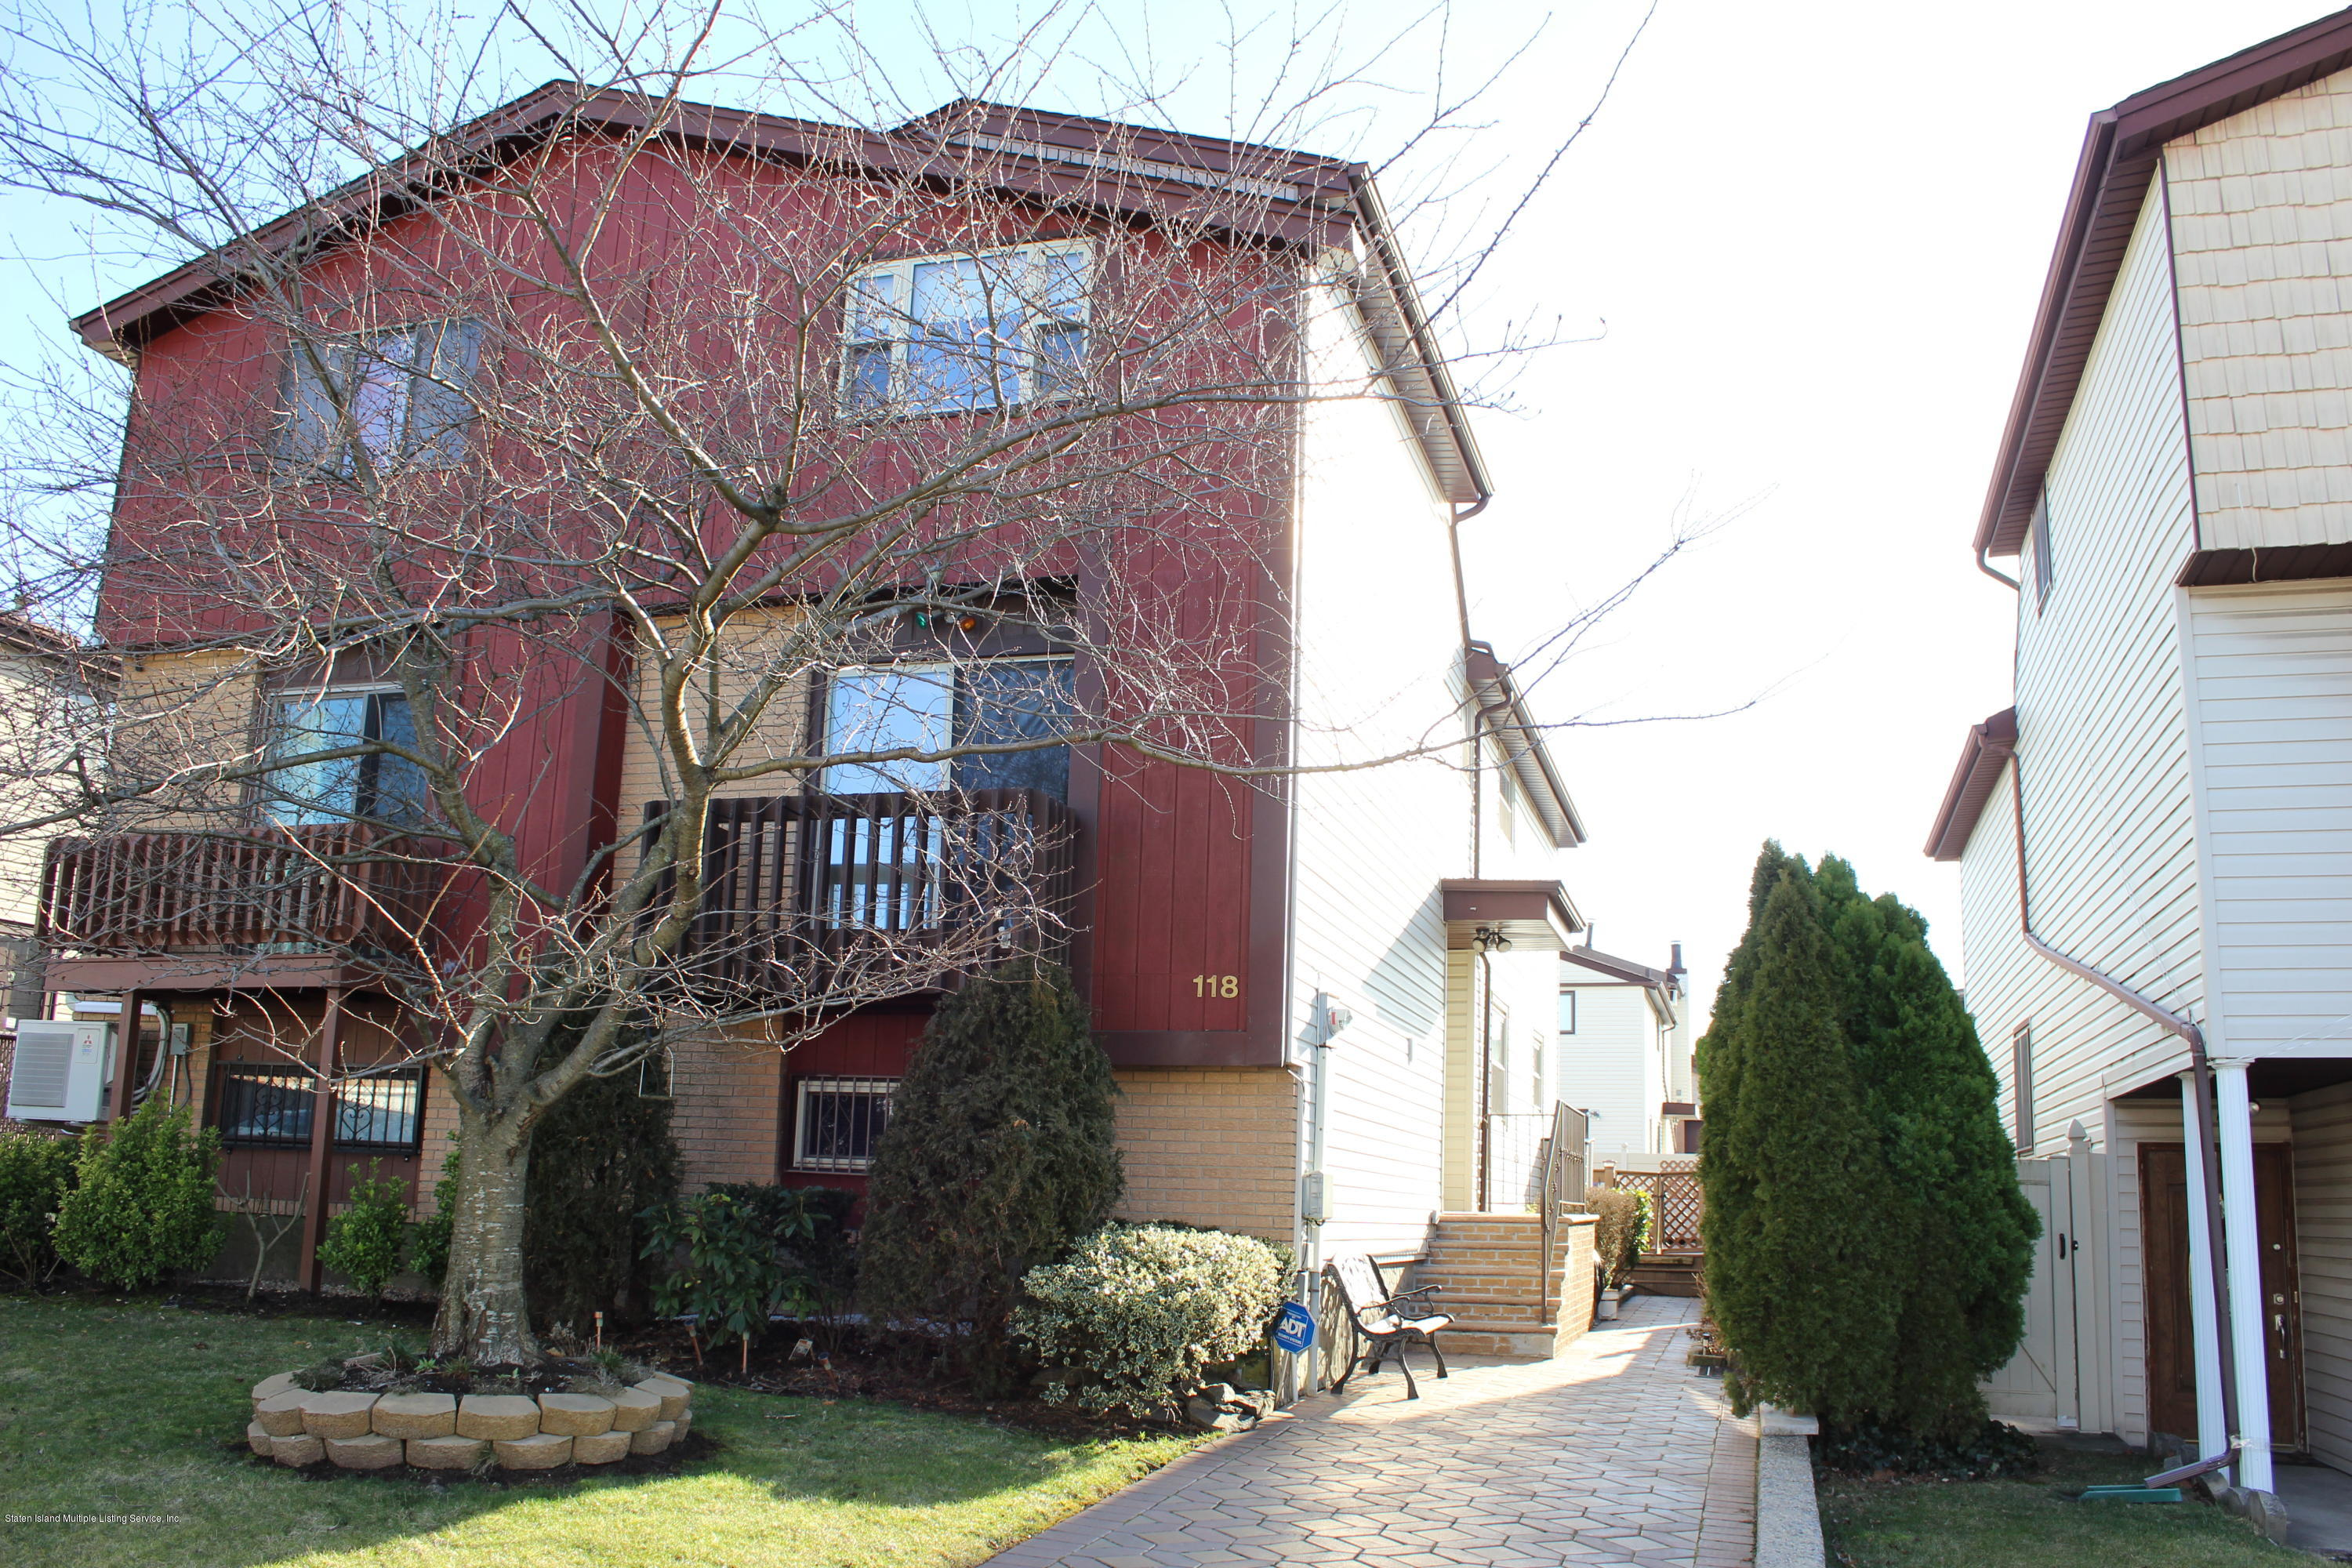 Single Family - Attached in Heartland Village - 118 Braisted Avenue  Staten Island, NY 10314